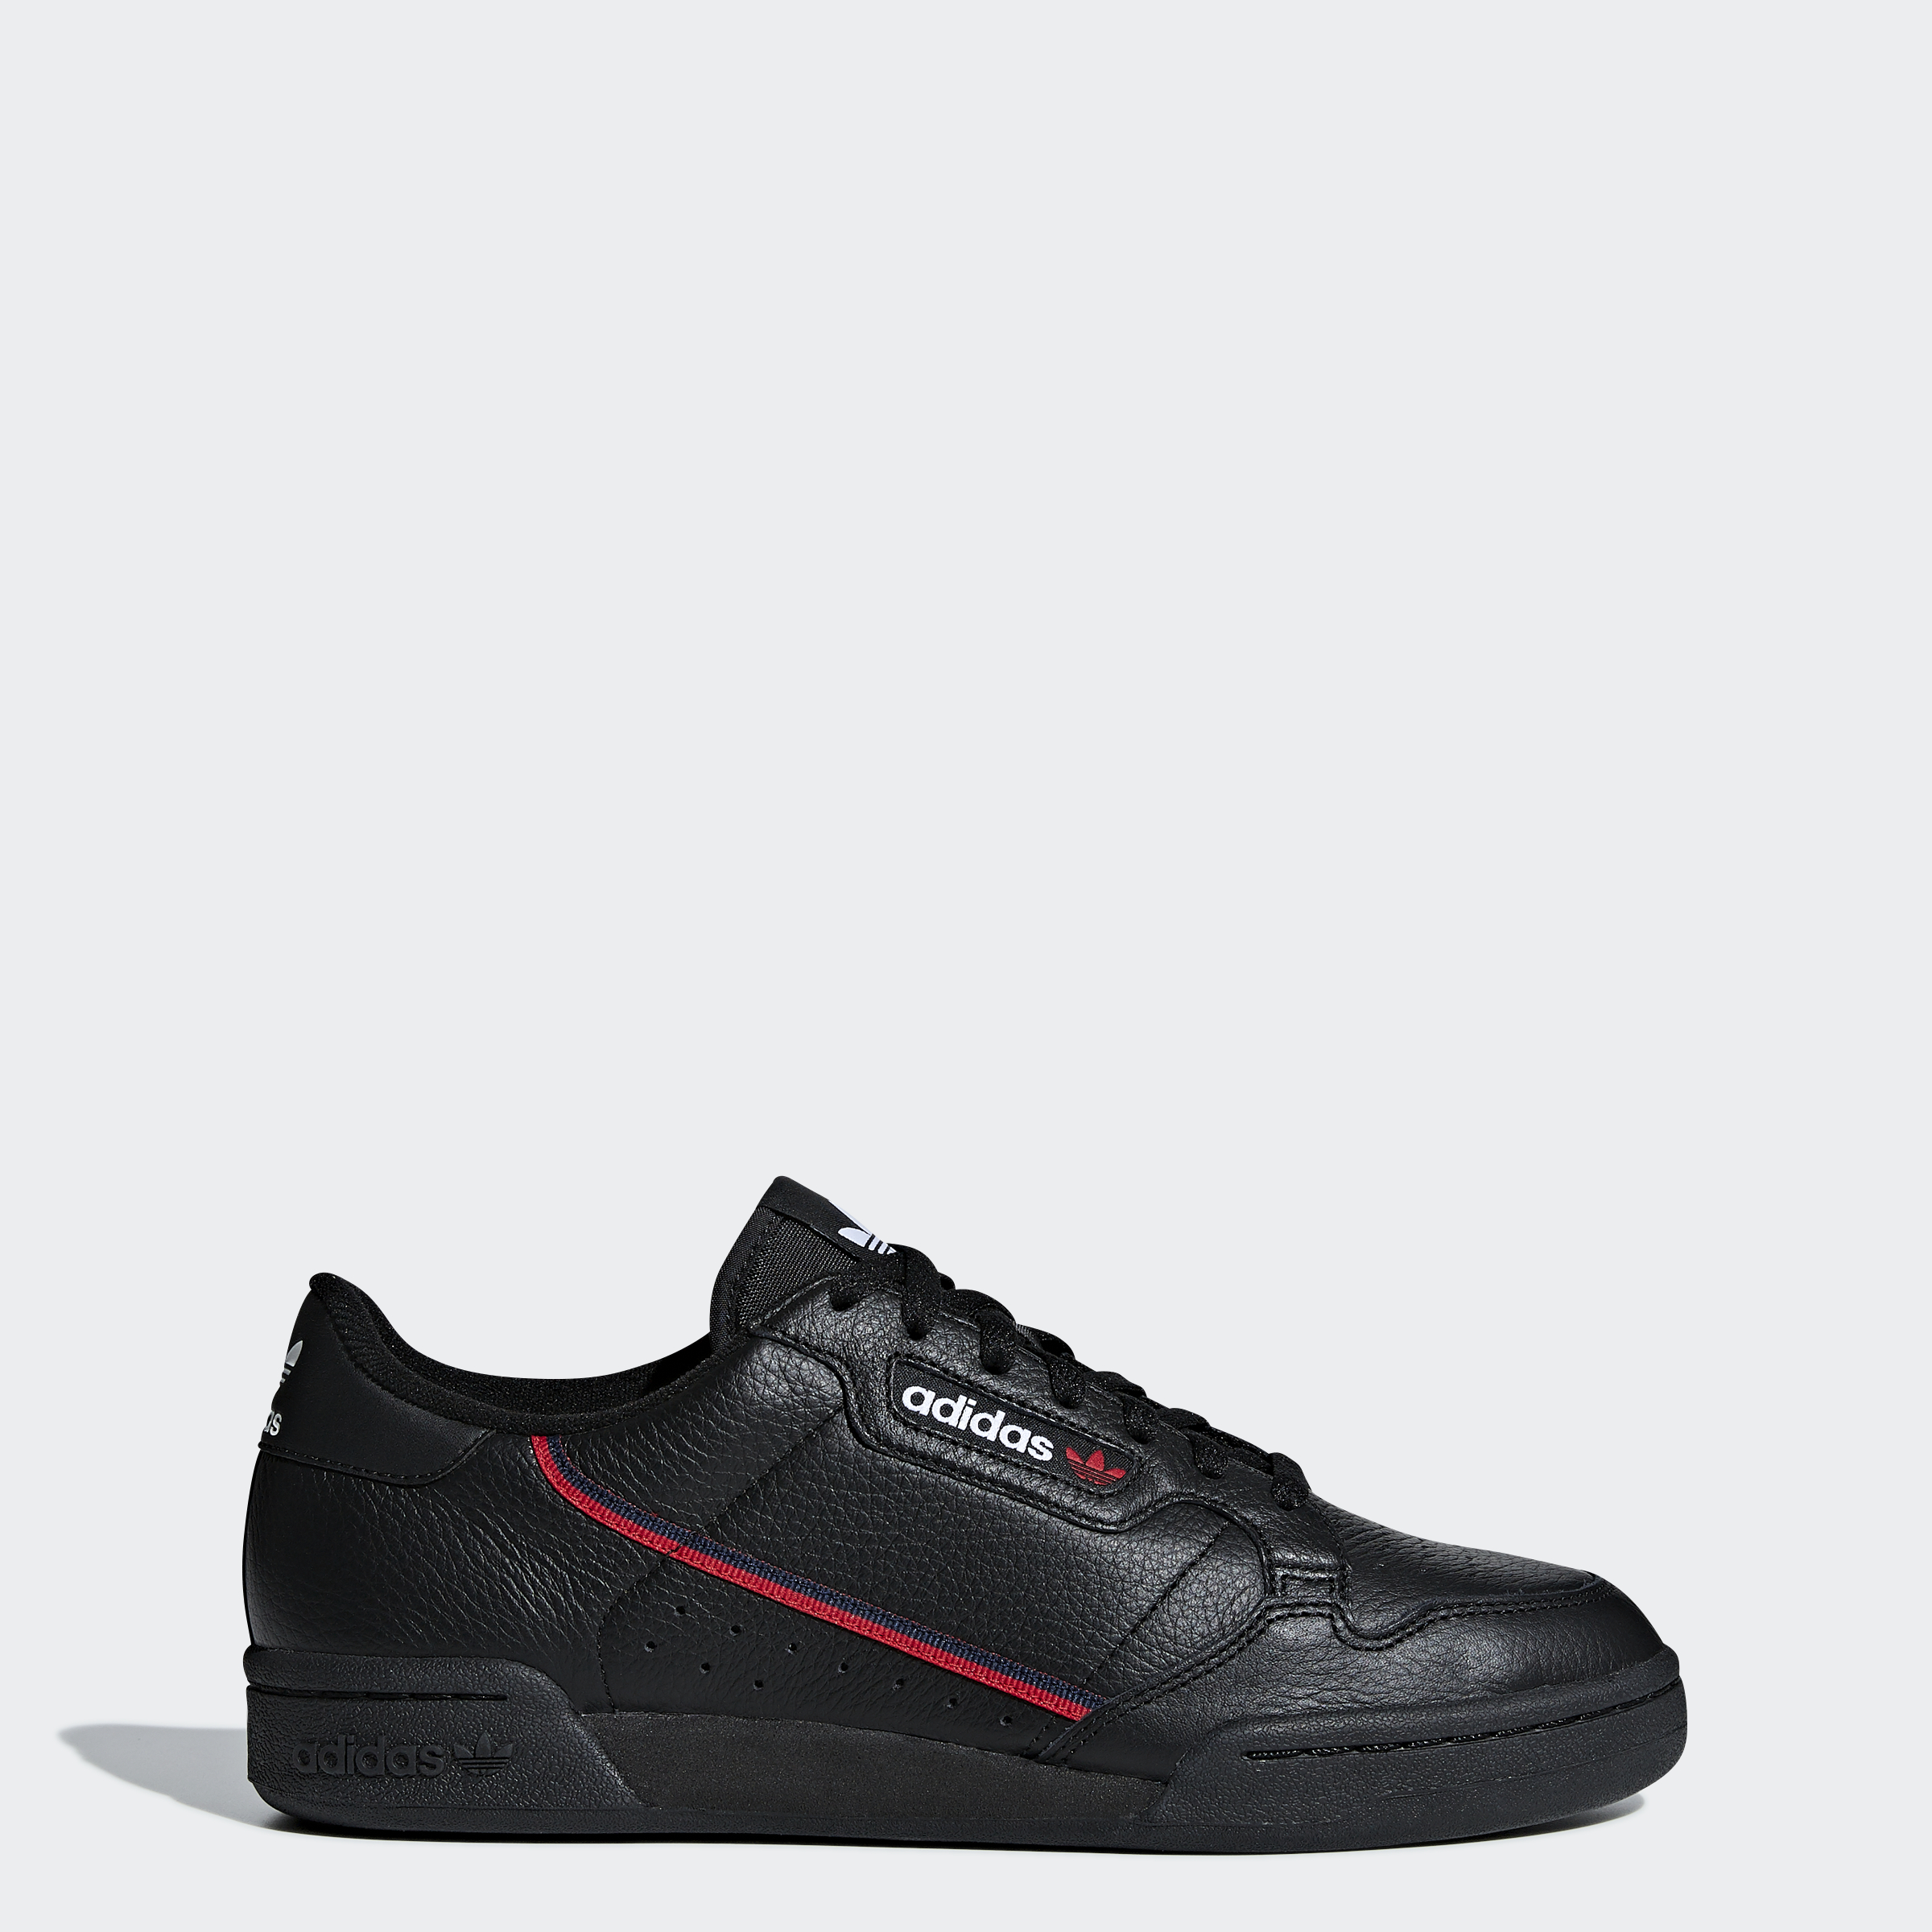 adidas-Originals-Continental-80-Shoes-Men-039-s thumbnail 19